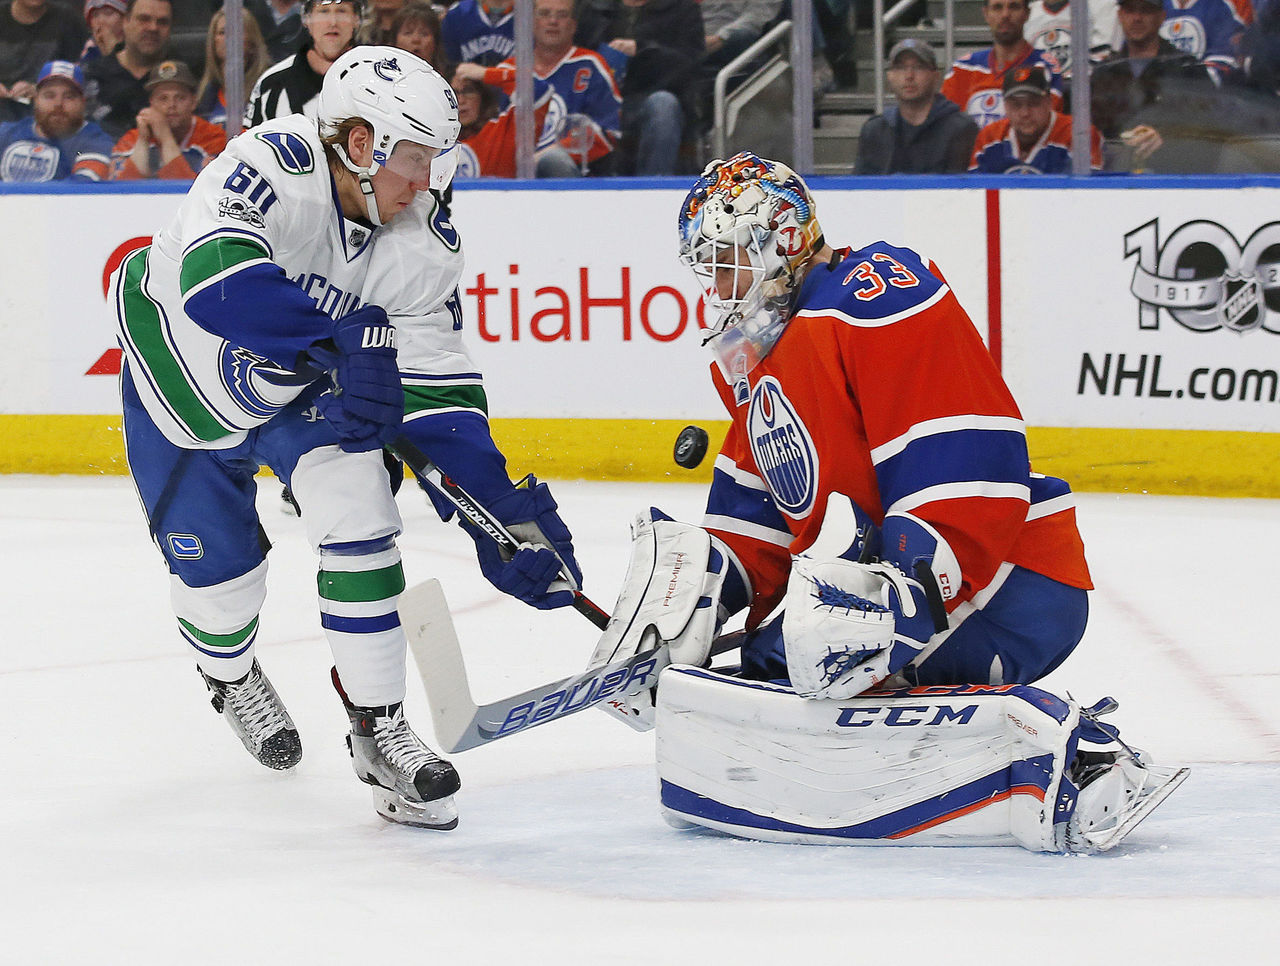 Cropped 2017 03 19t035647z 1229265679 nocid rtrmadp 3 nhl vancouver canucks at edmonton oilers